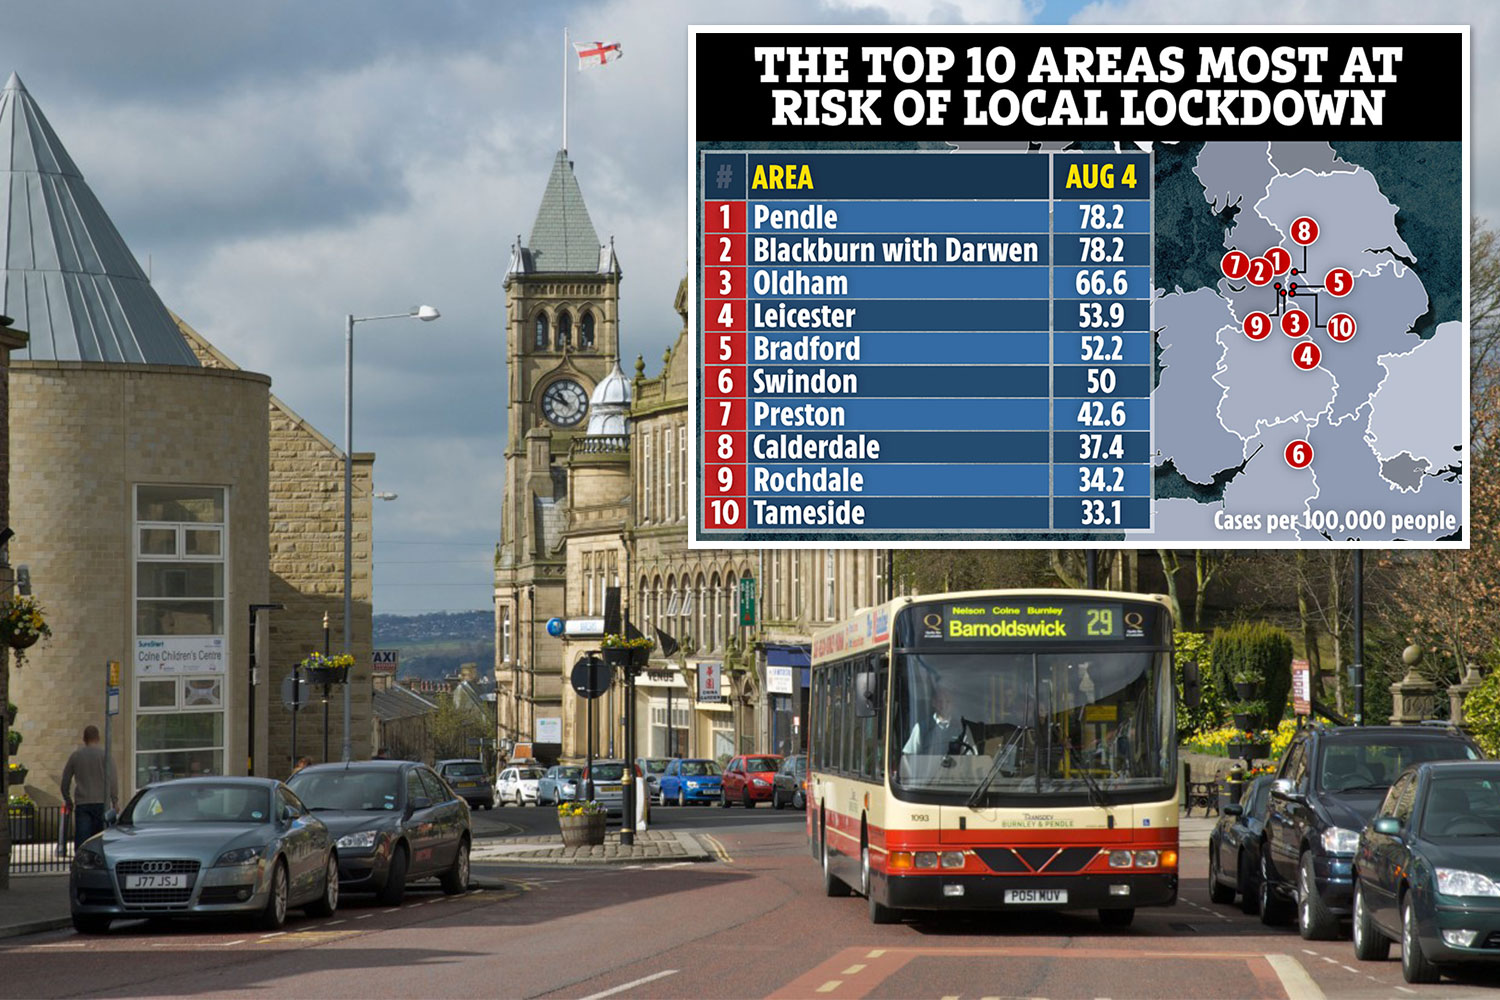 Pendle in Lancashire becomes England's joint coronavirus hotspot with Blackburn after cases almost DOUBLE in a - The Sun